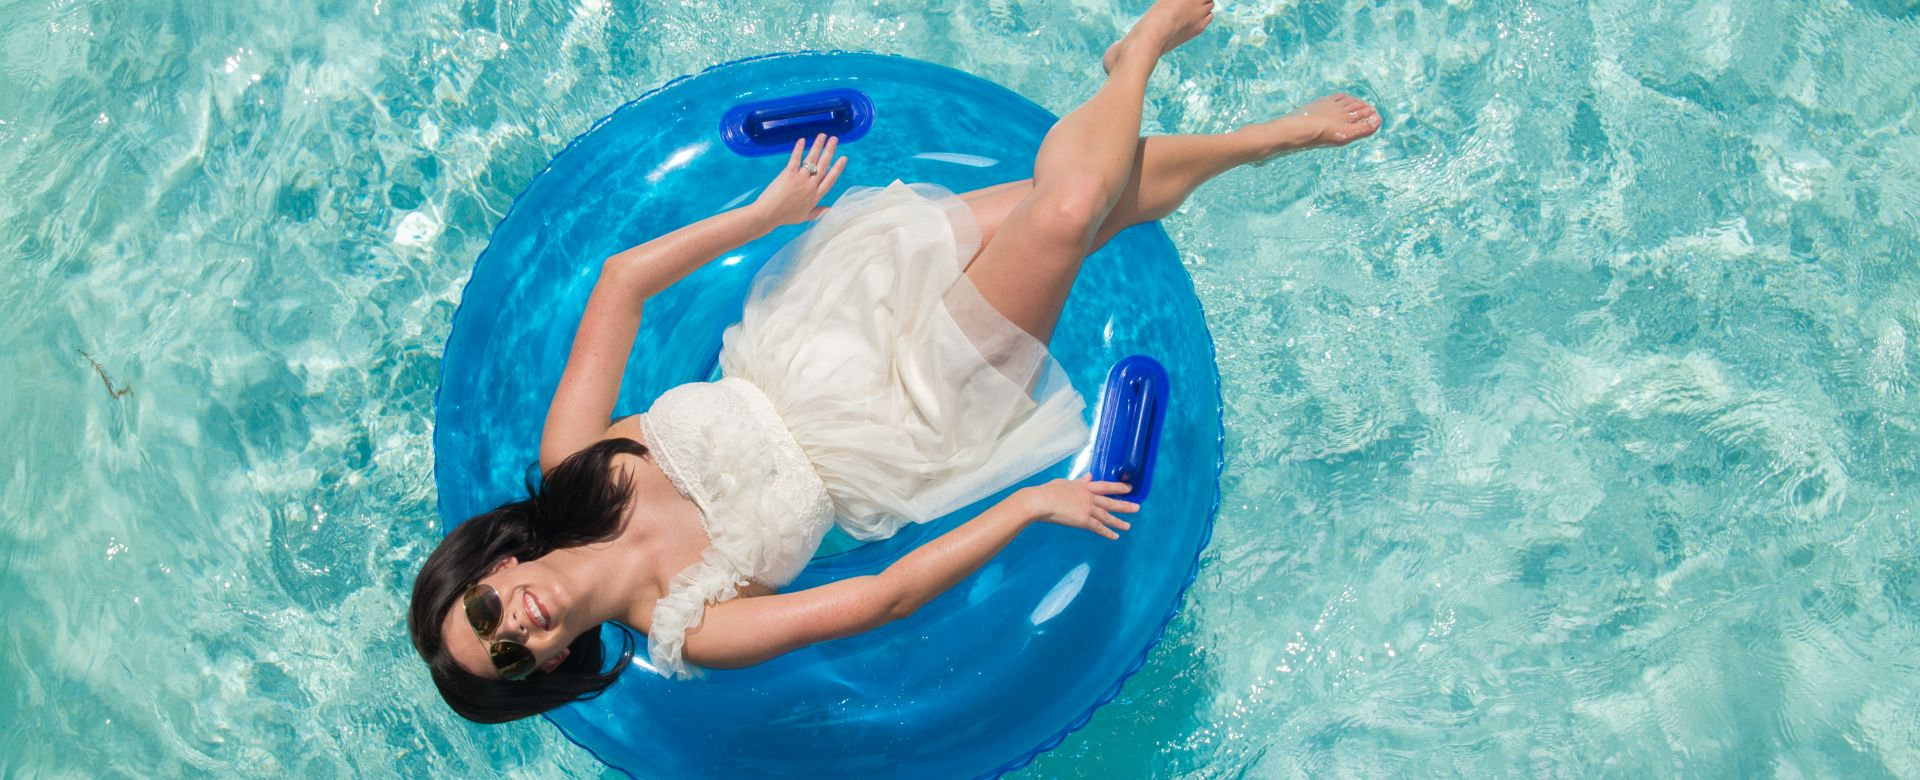 A woman wearing a white dress relaxes in a water tube.